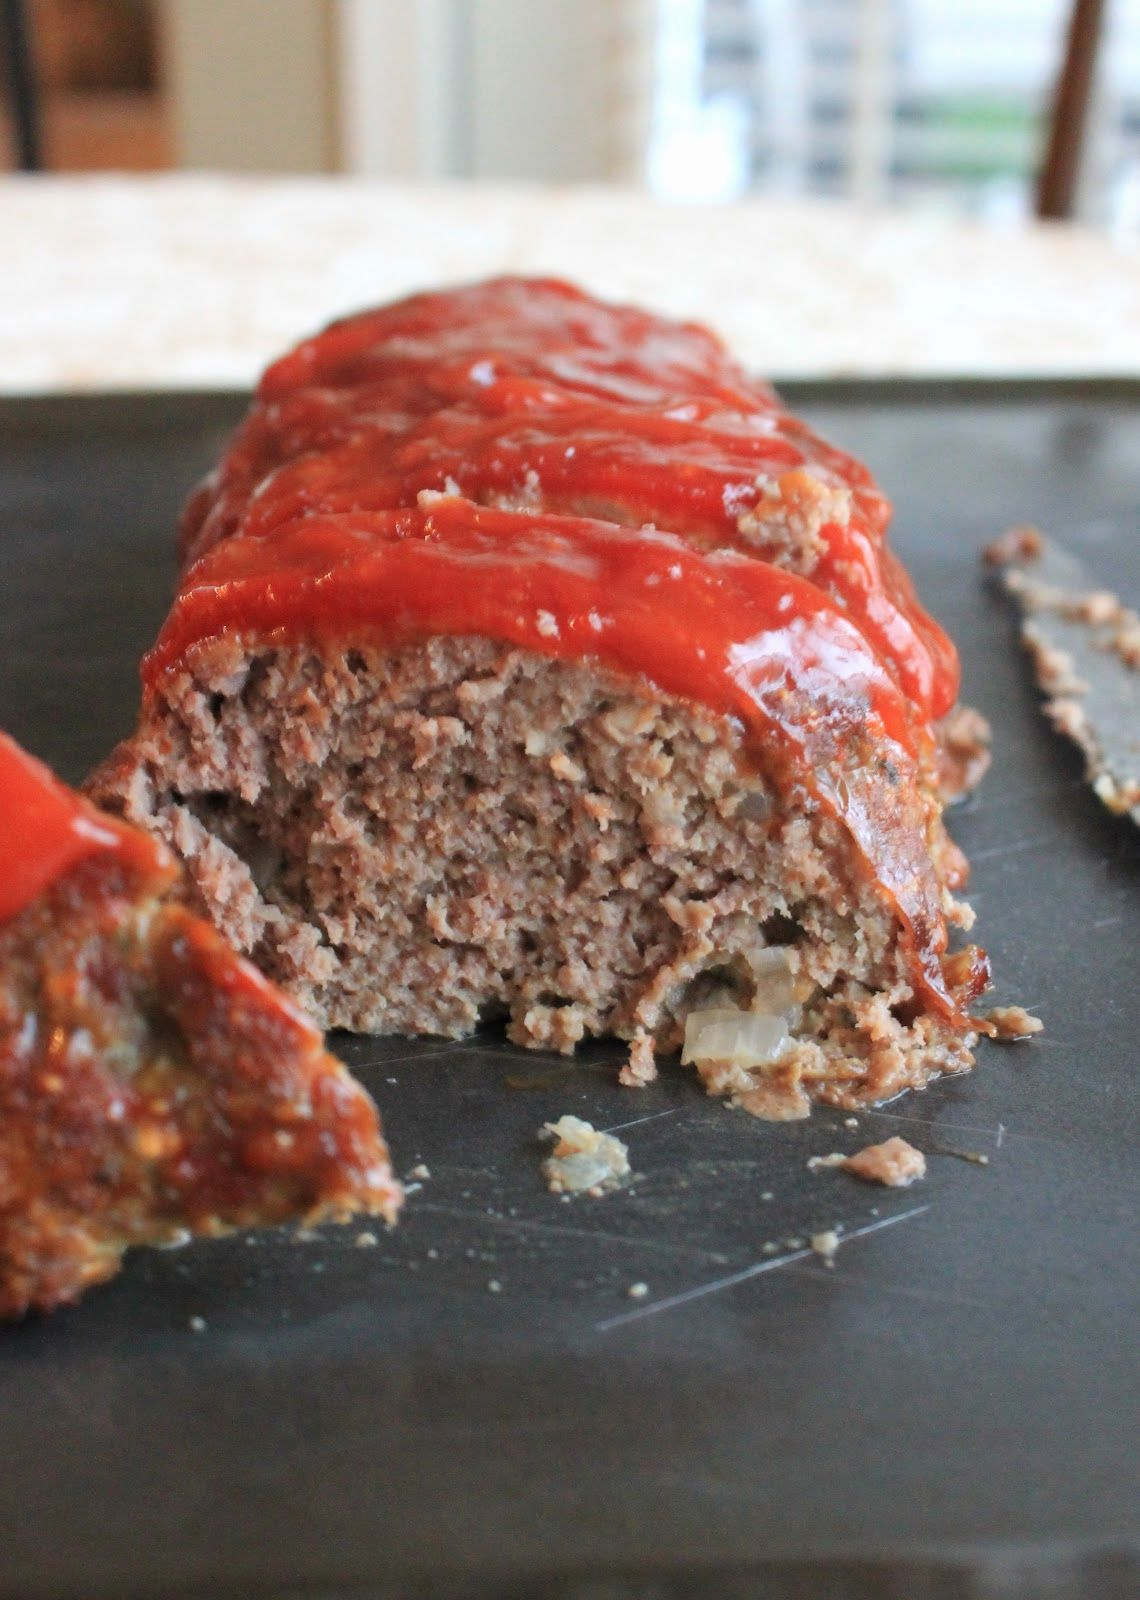 Meatloaf Recipe with Bread Crumbs in 2020 Good meatloaf